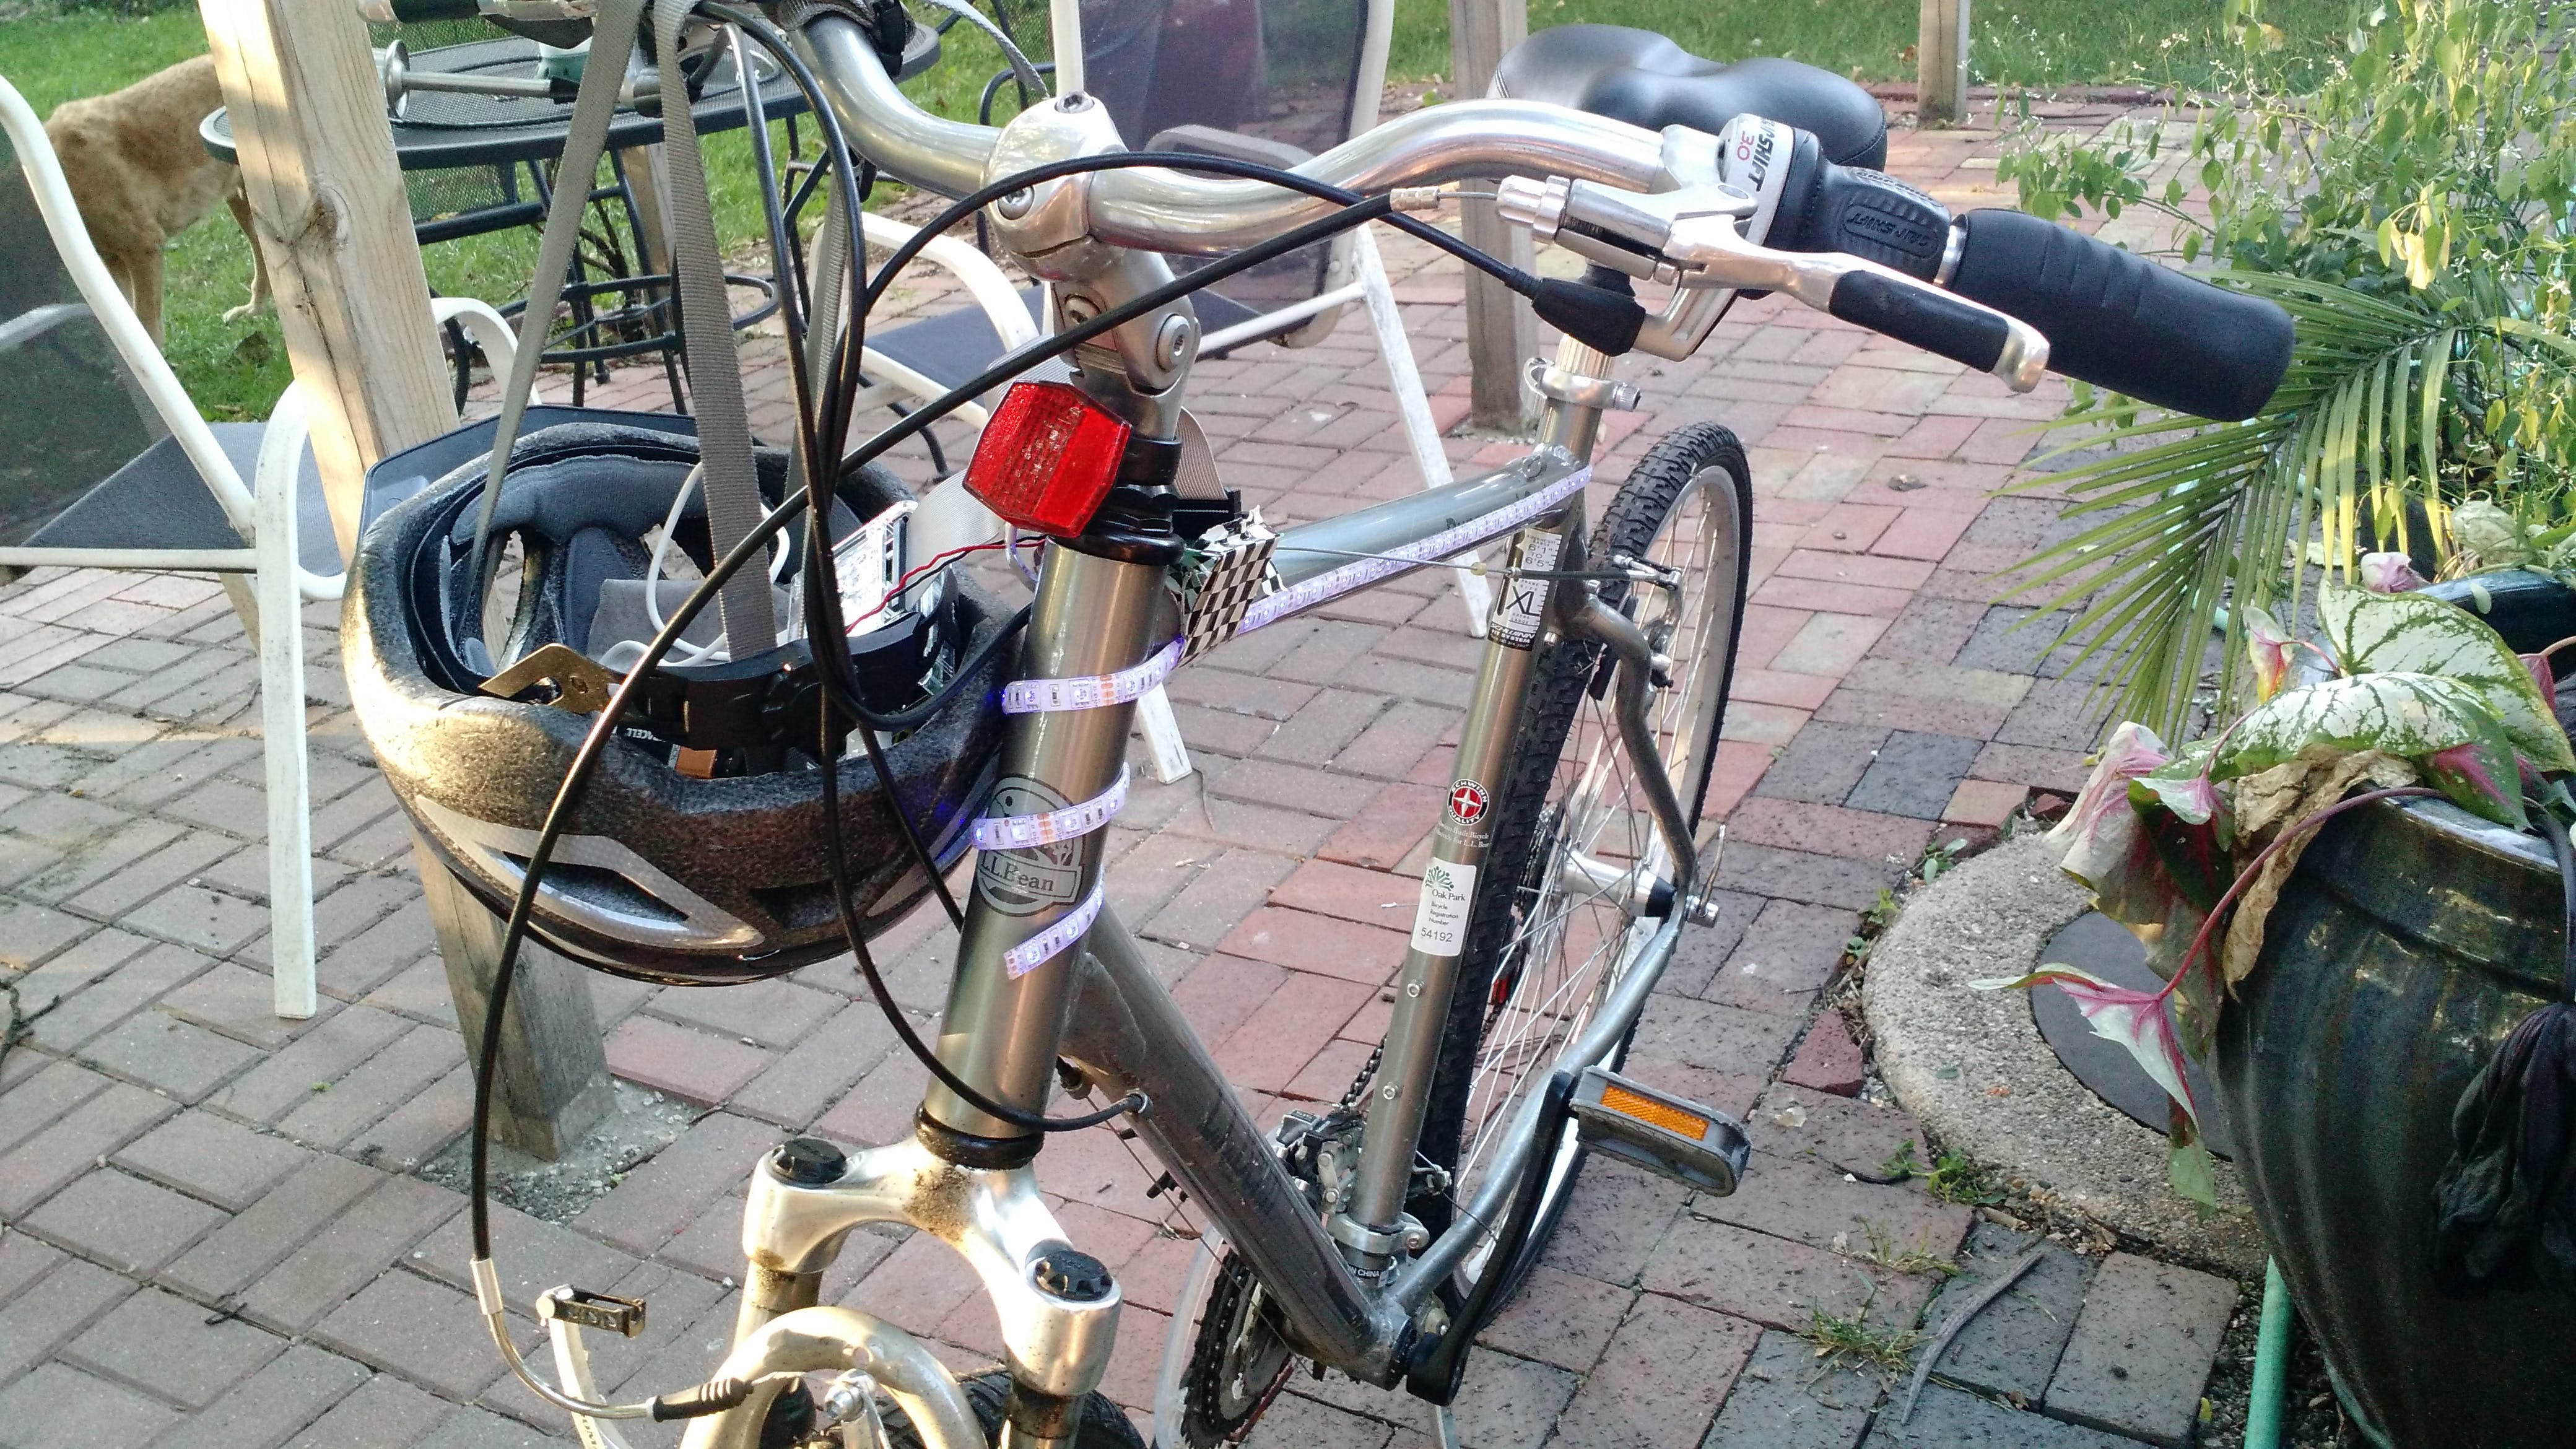 Light up night bike using Windows 10 iot Core